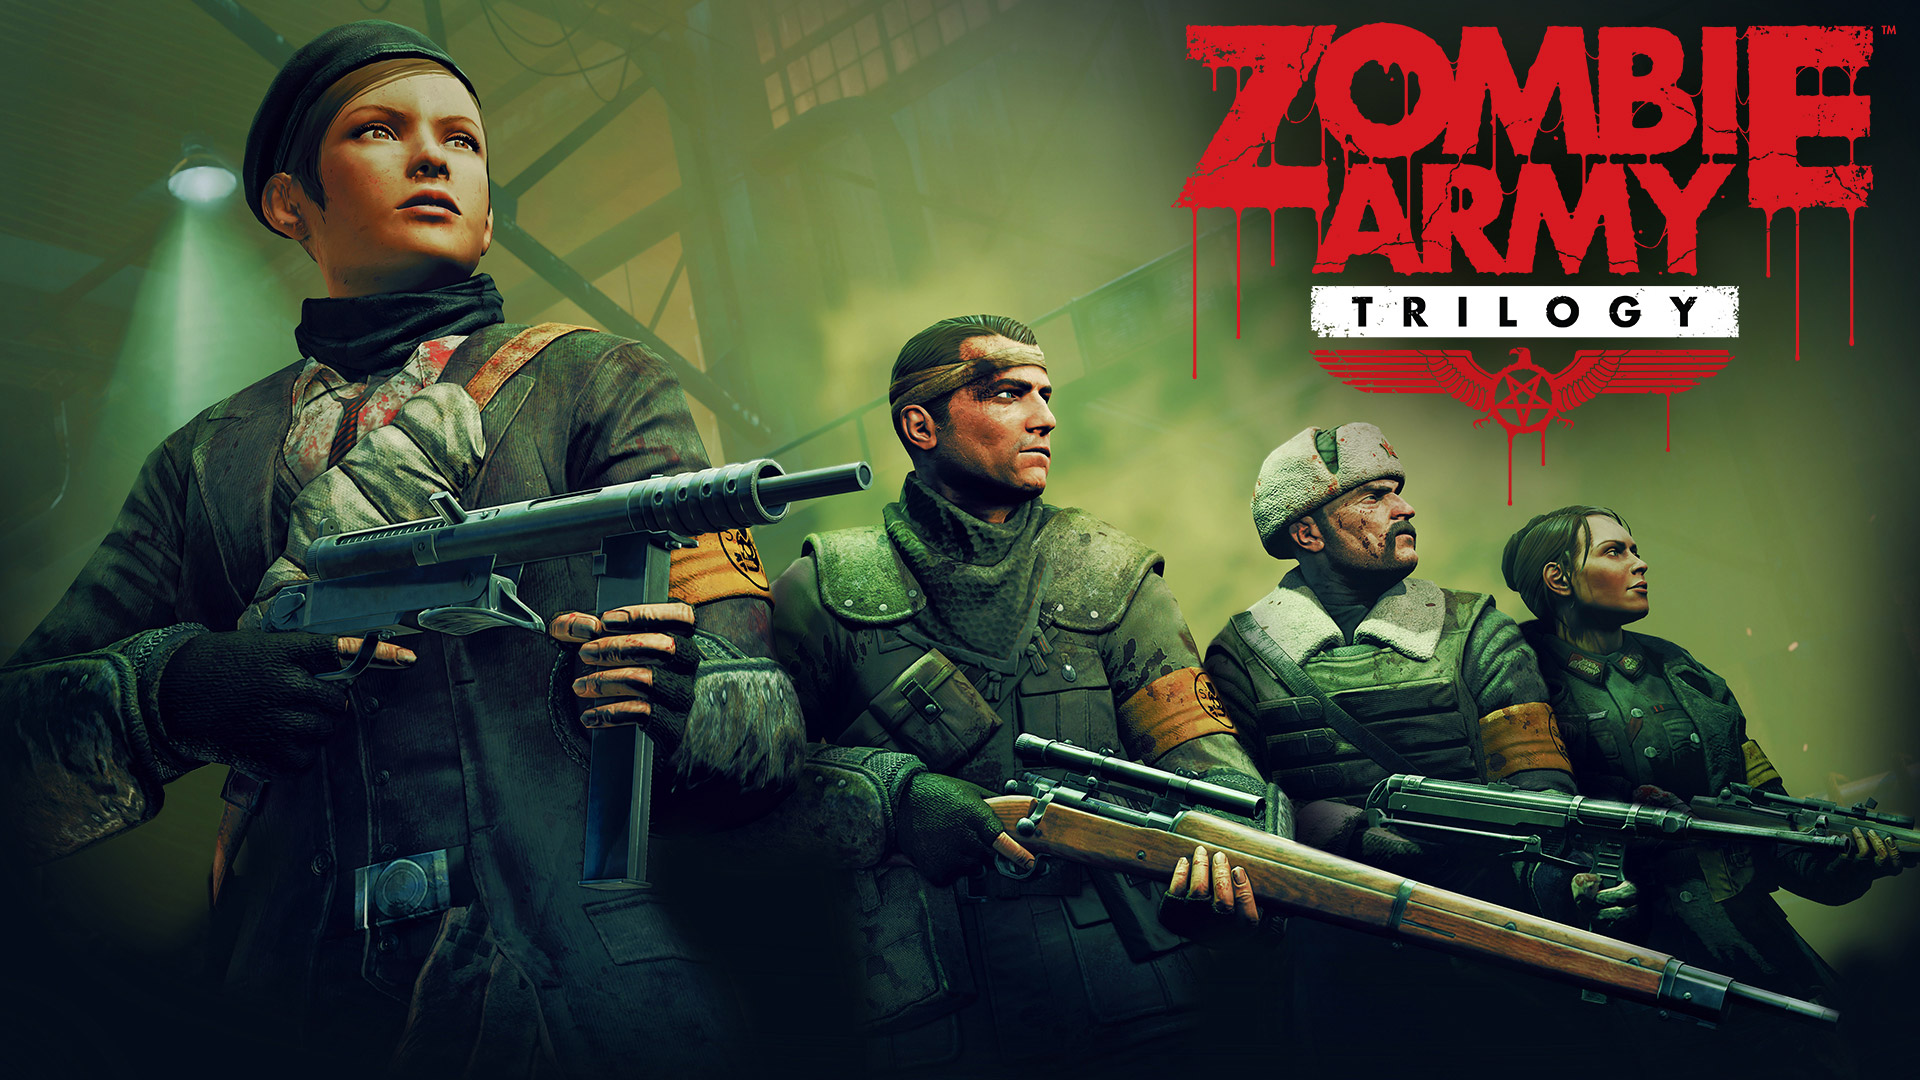 Free Zombie Army Trilogy Wallpaper in 1920x1080